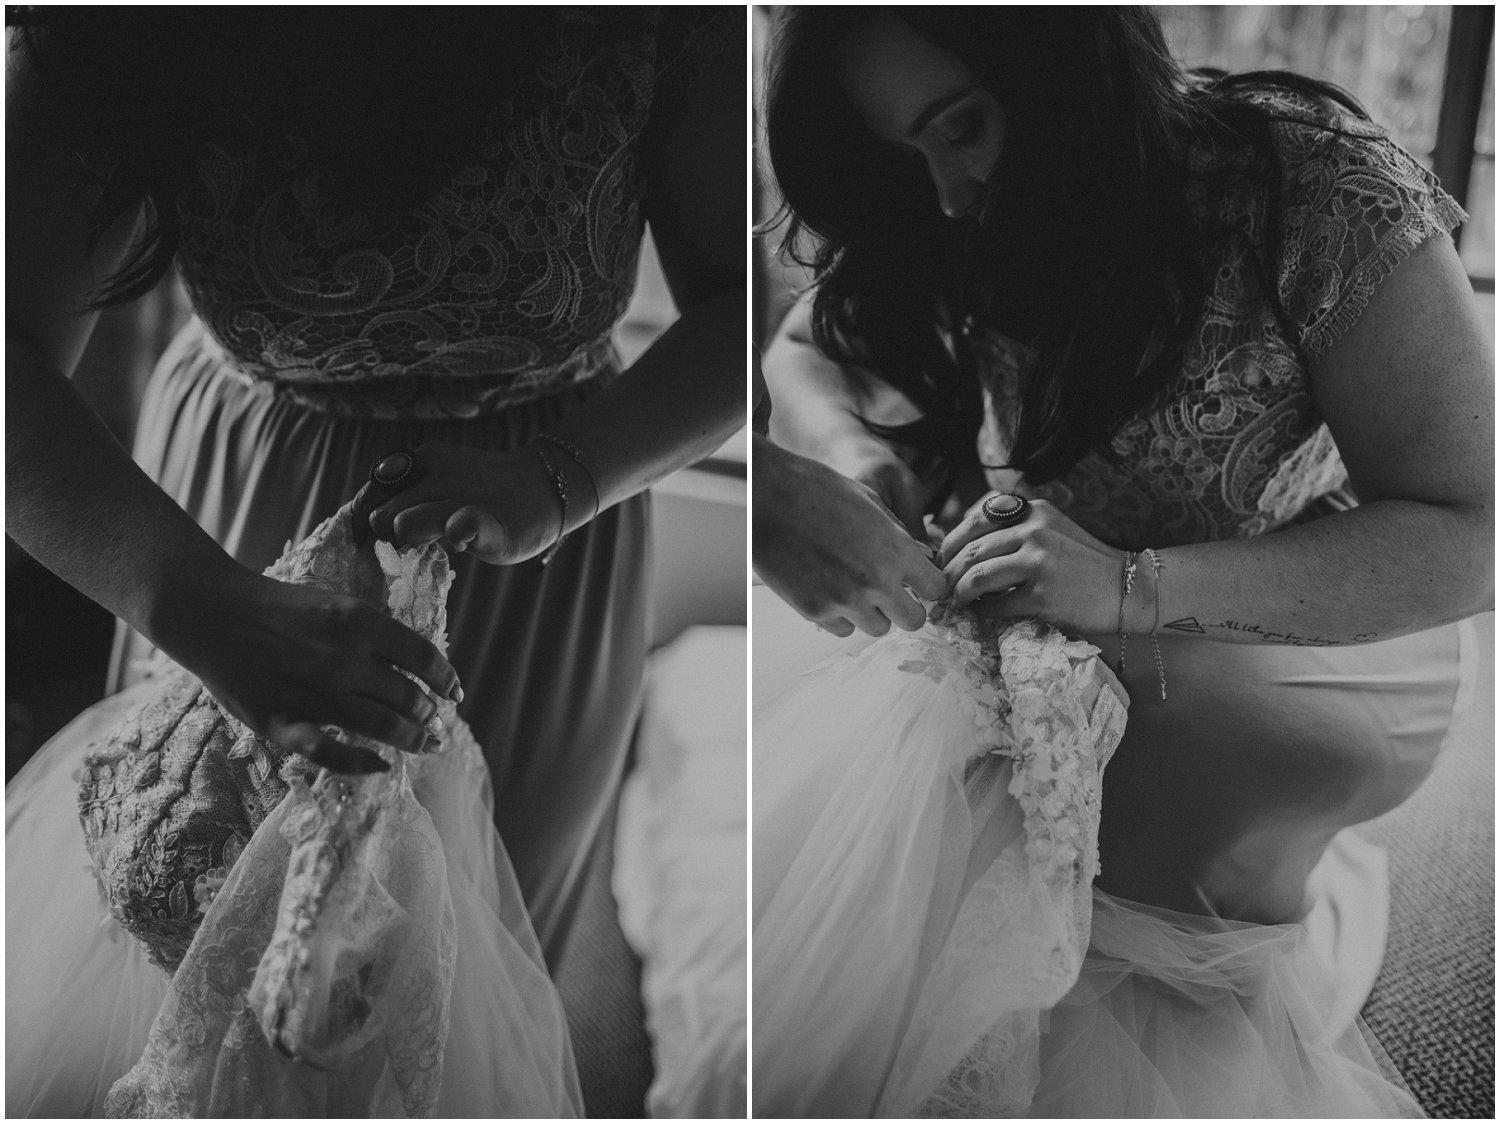 Top Wedding Photographer Cape Town South Africa Artistic Creative Documentary Wedding Photography Rue Kruger_1314.jpg